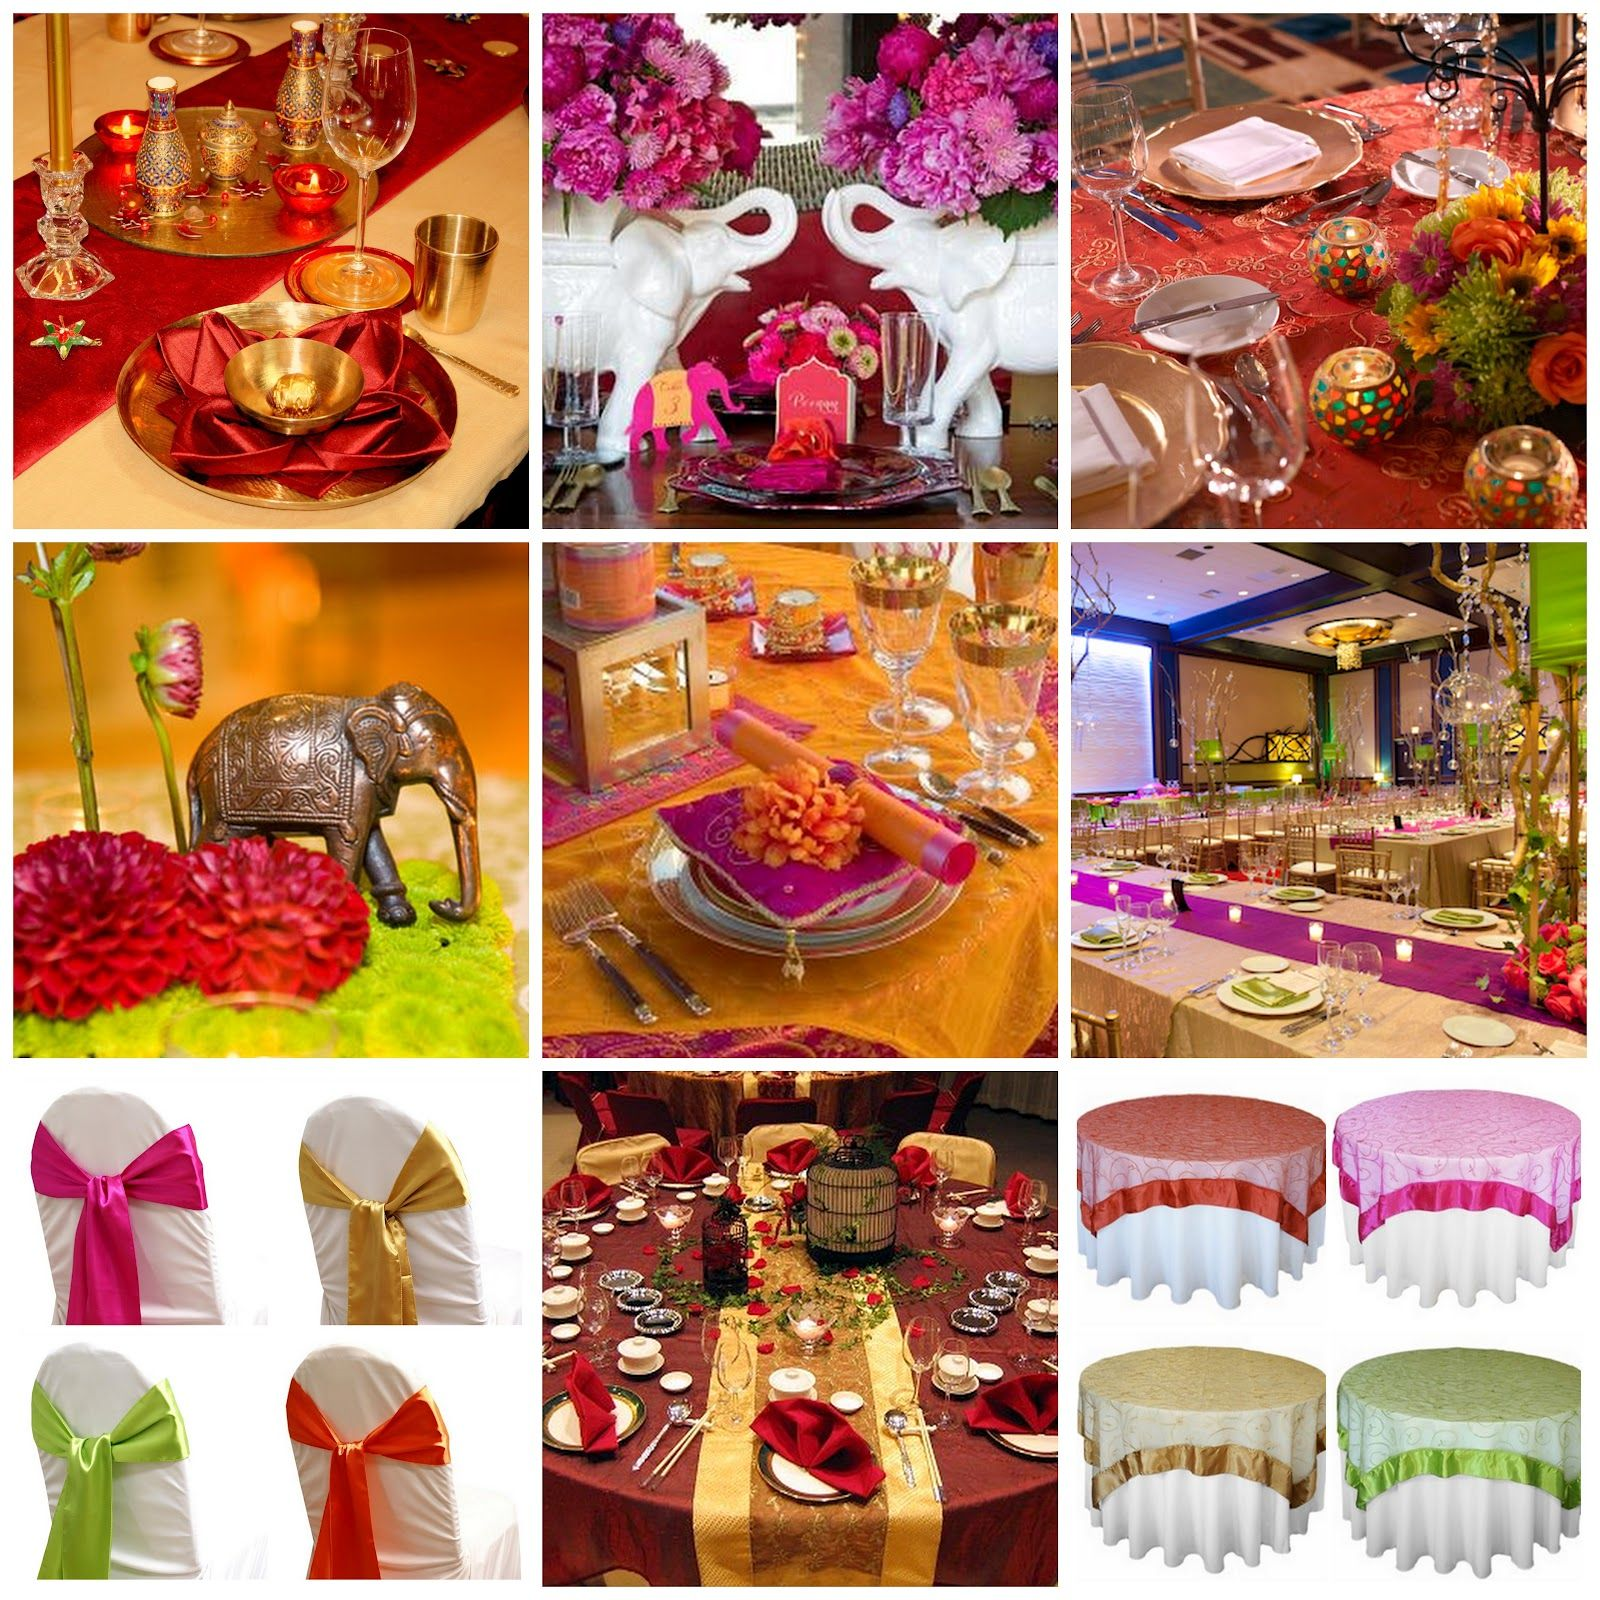 Hindu wedding classic weddings and events indian wedding ideas classic weddings events indian wedding ideas best free home design idea inspiration junglespirit